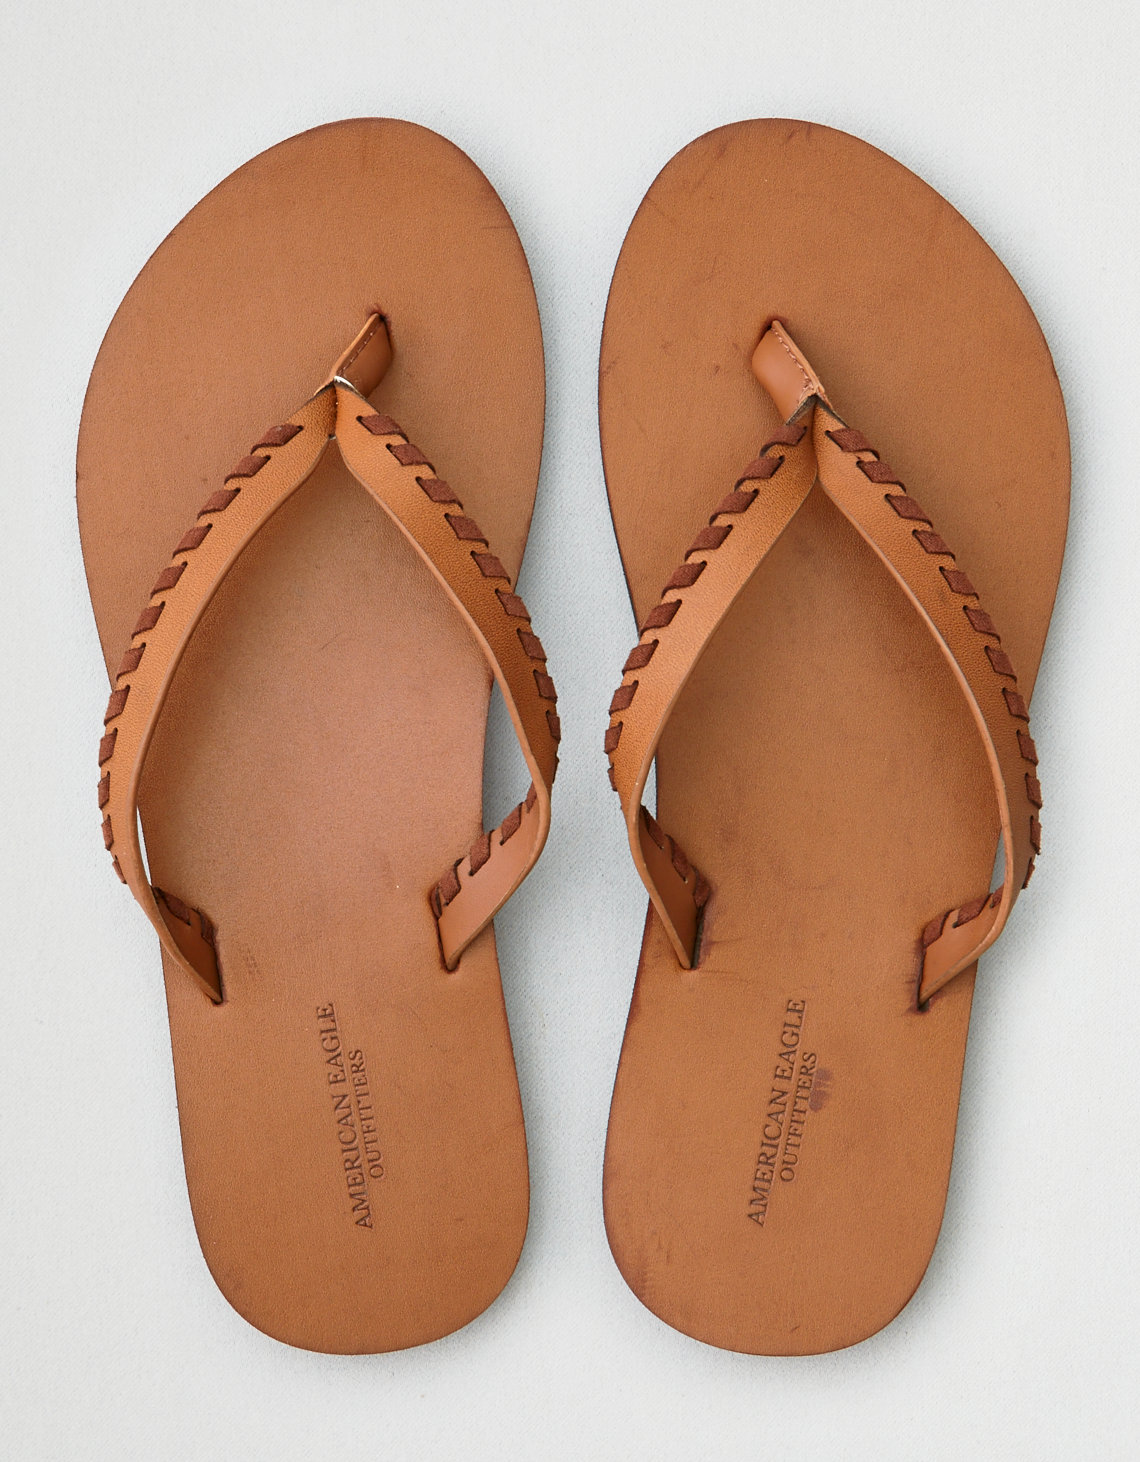 sale from china AEO Braided Flip Flop cheap visit cheap sale 2014 new qvwv8c